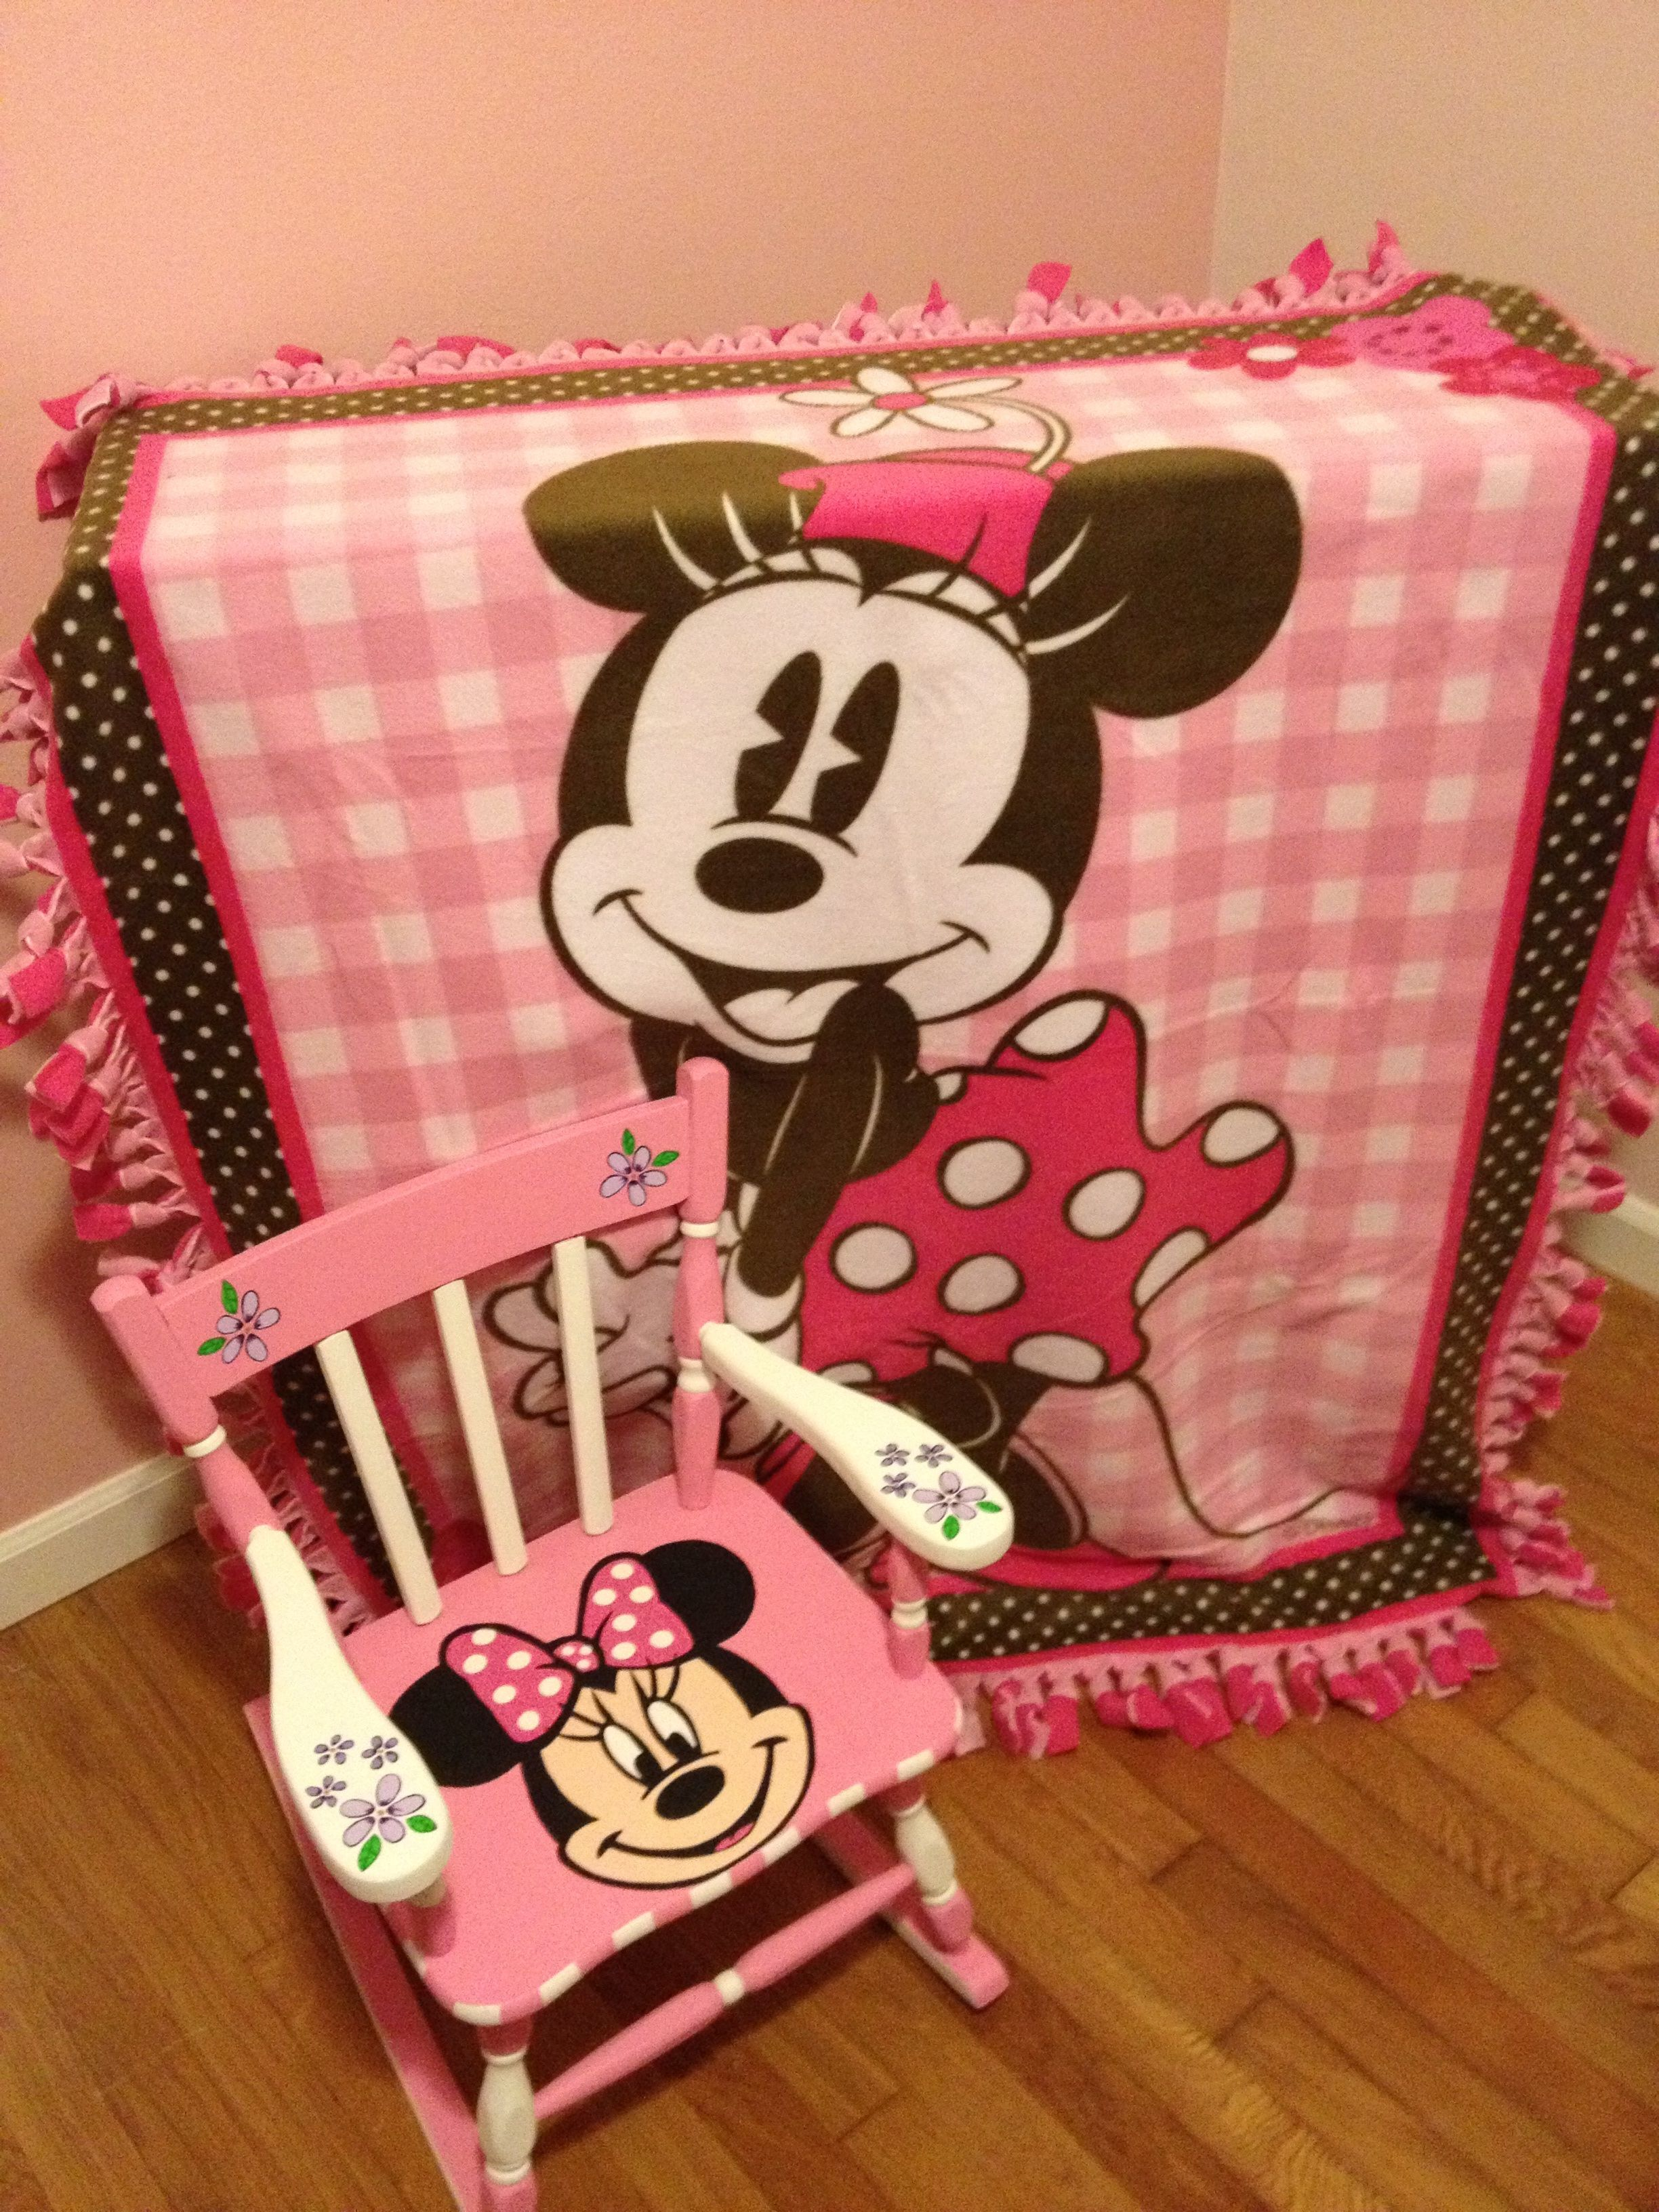 Ordinaire Inspired By My Lovely Daughter Who Loves Minnie Mouse! Hand Painted Minnie  Mouse Rocking Chair And Fleece So Soft Blanket.